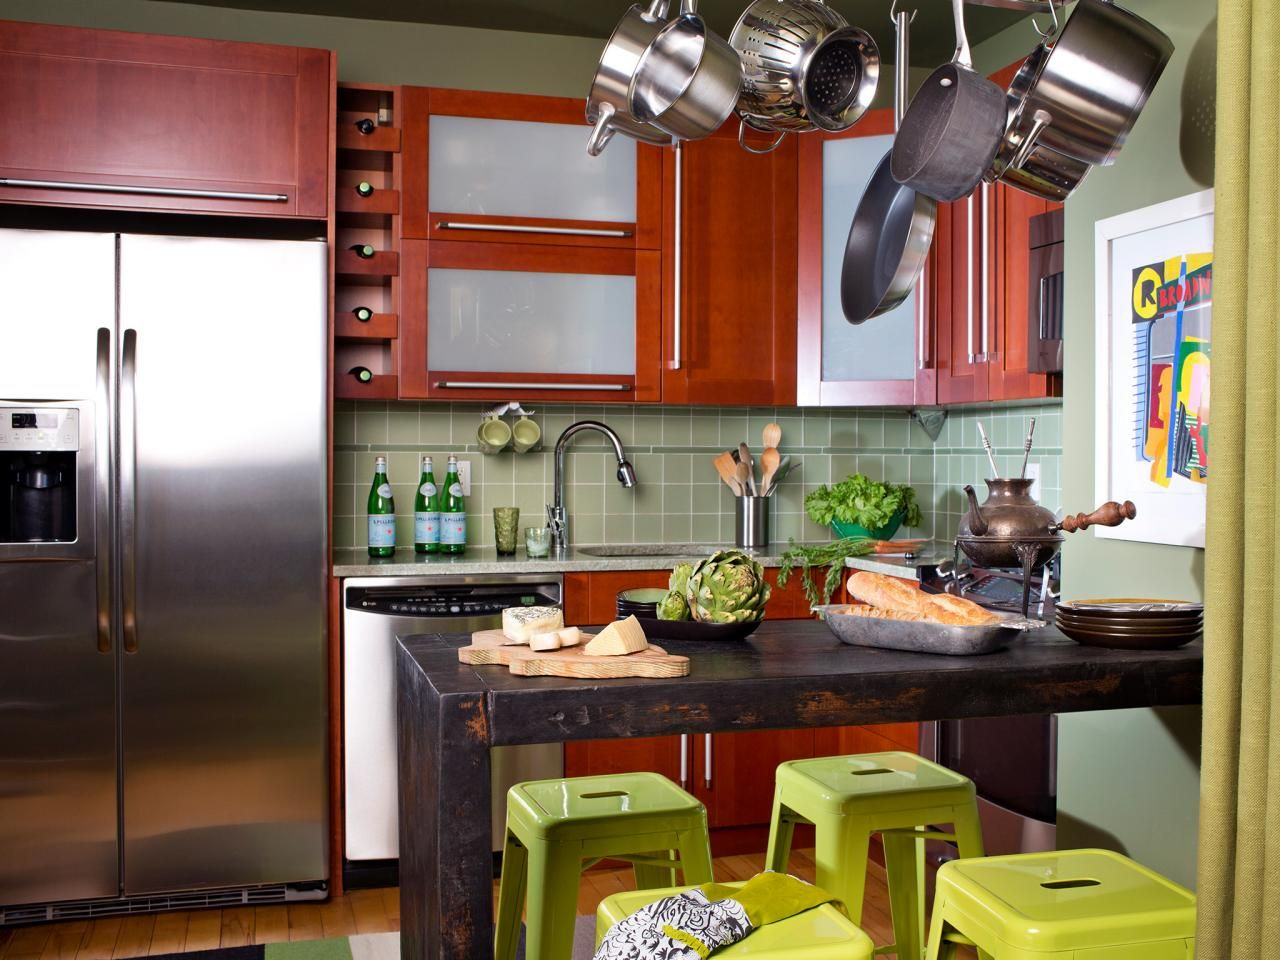 Smallkitchen Design Tips  Hanging Pot Racks Pot Rack And Bar Extraordinary Small Remodeled Kitchens Ideas Design Decoration